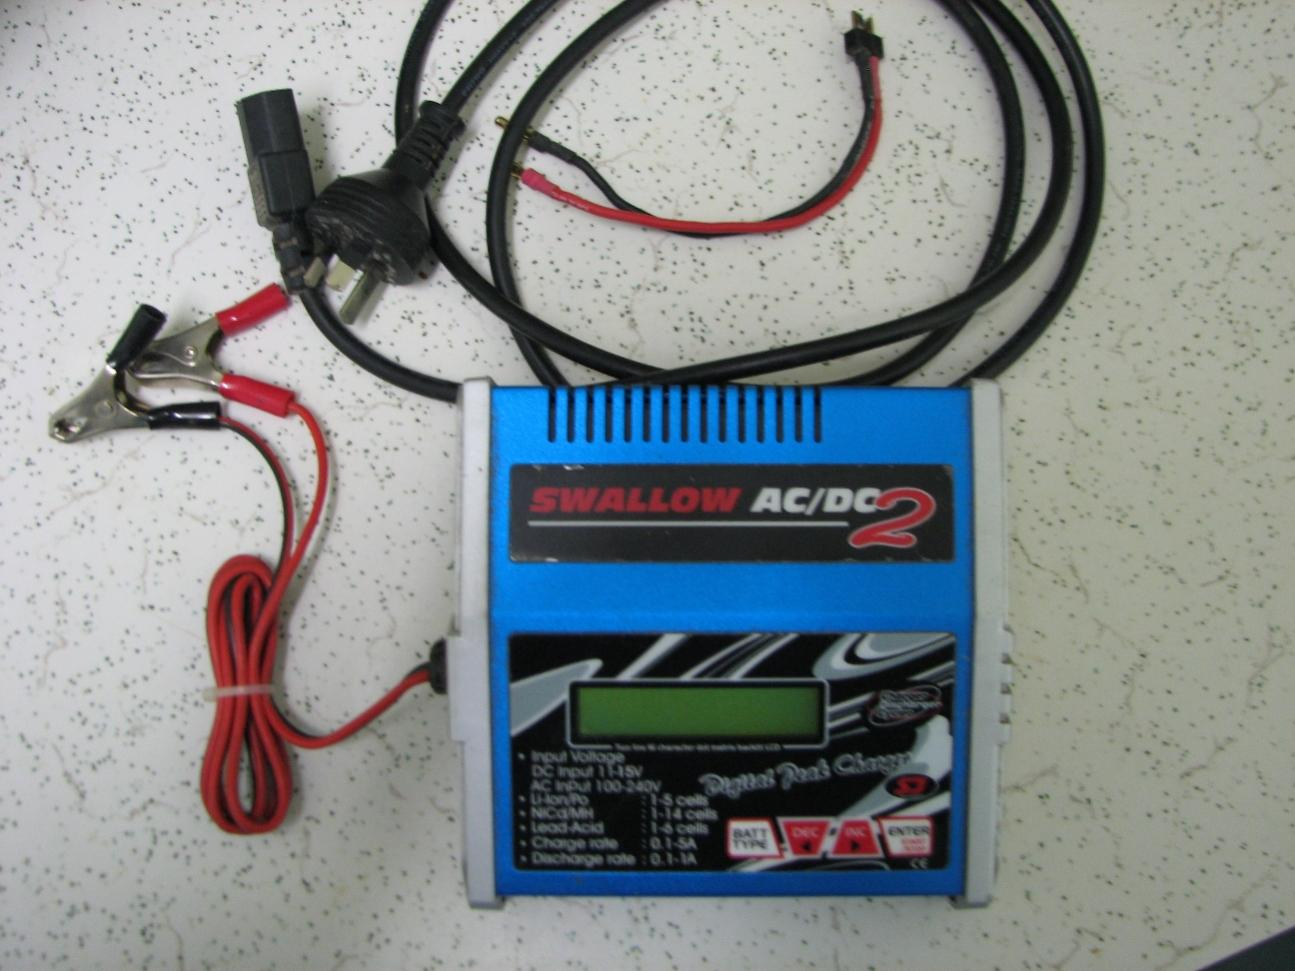 swallow battery charger instructions